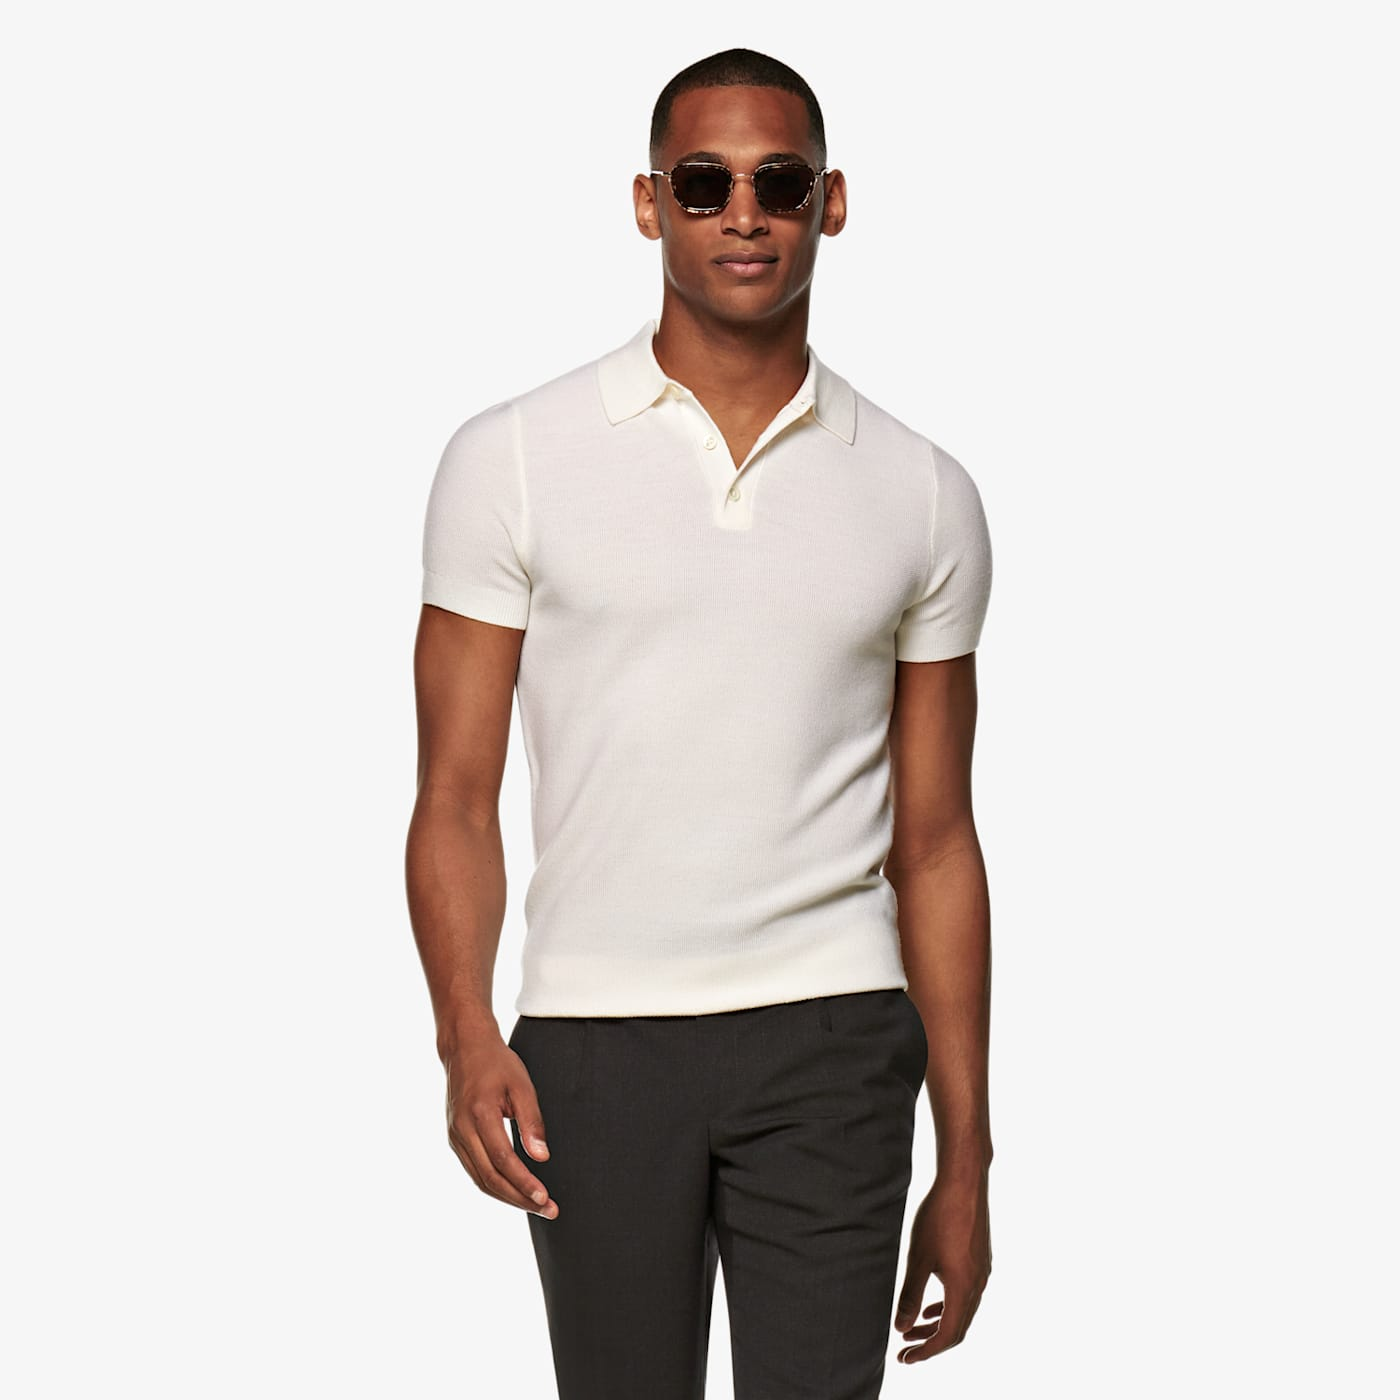 Mens Vintage Shirts – Casual, Dress, T-shirts, Polos Off White Polo $89.00 AT vintagedancer.com